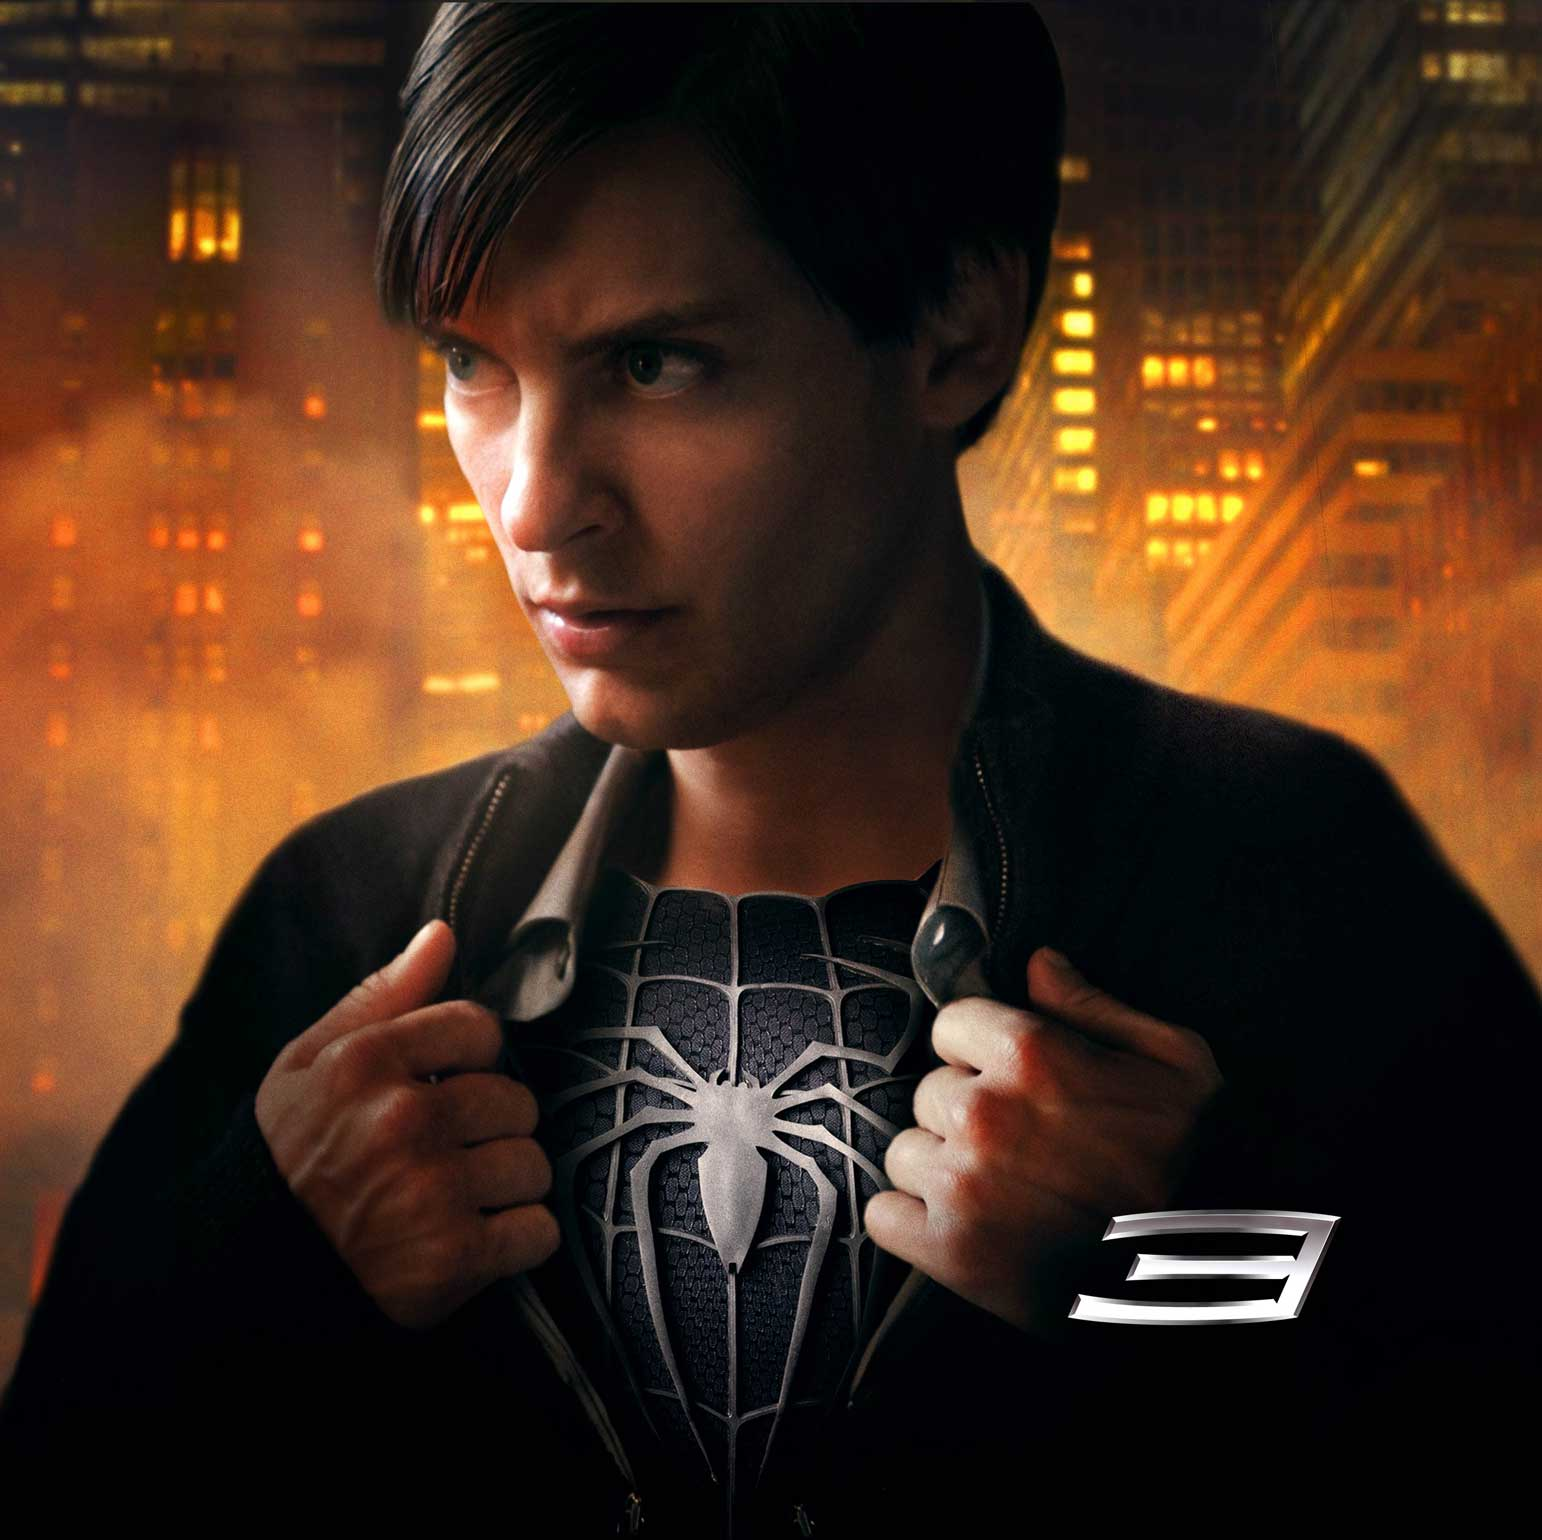 Tobey maguire black spiderman - photo#16